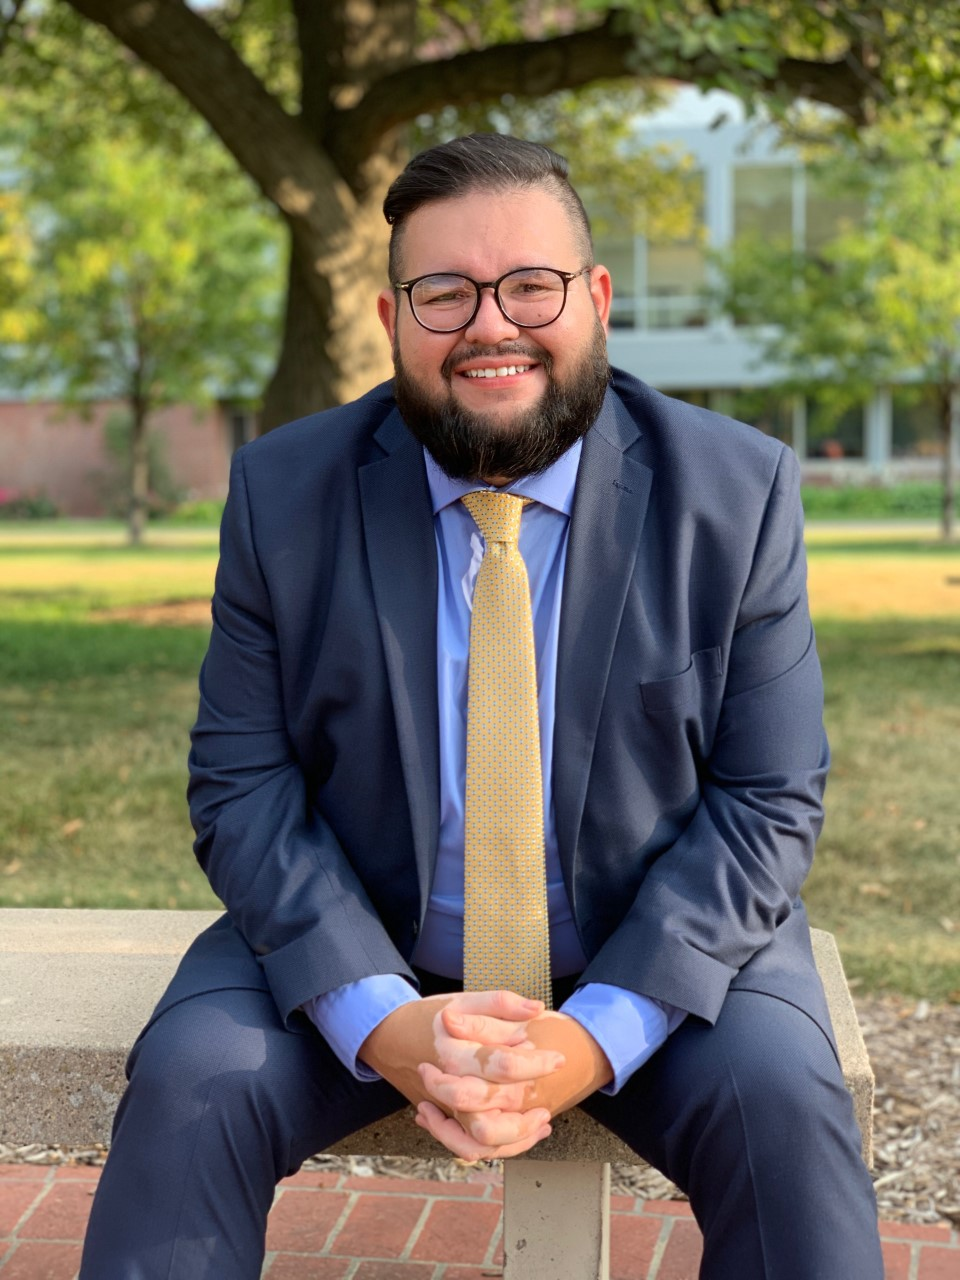 This is a photo of Luis Olivas Herrera. He is the assistant director of the University of Nebraska at Kearney's office of diversity and inclusion. The office handles diversity initiatives at the university.